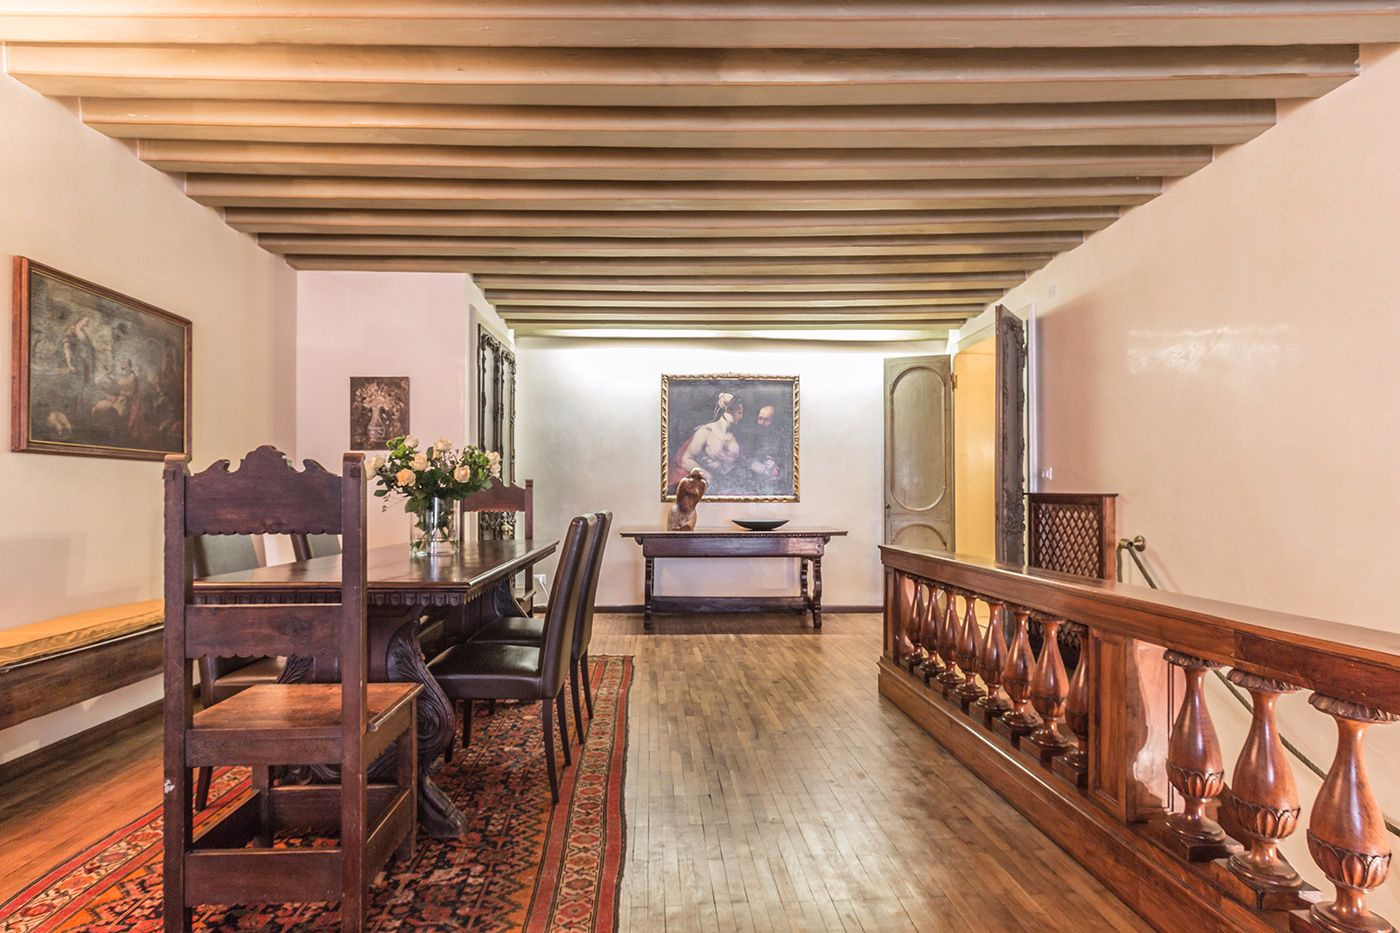 nice wooden beamed ceilings and natural parquet flooring confer warmth